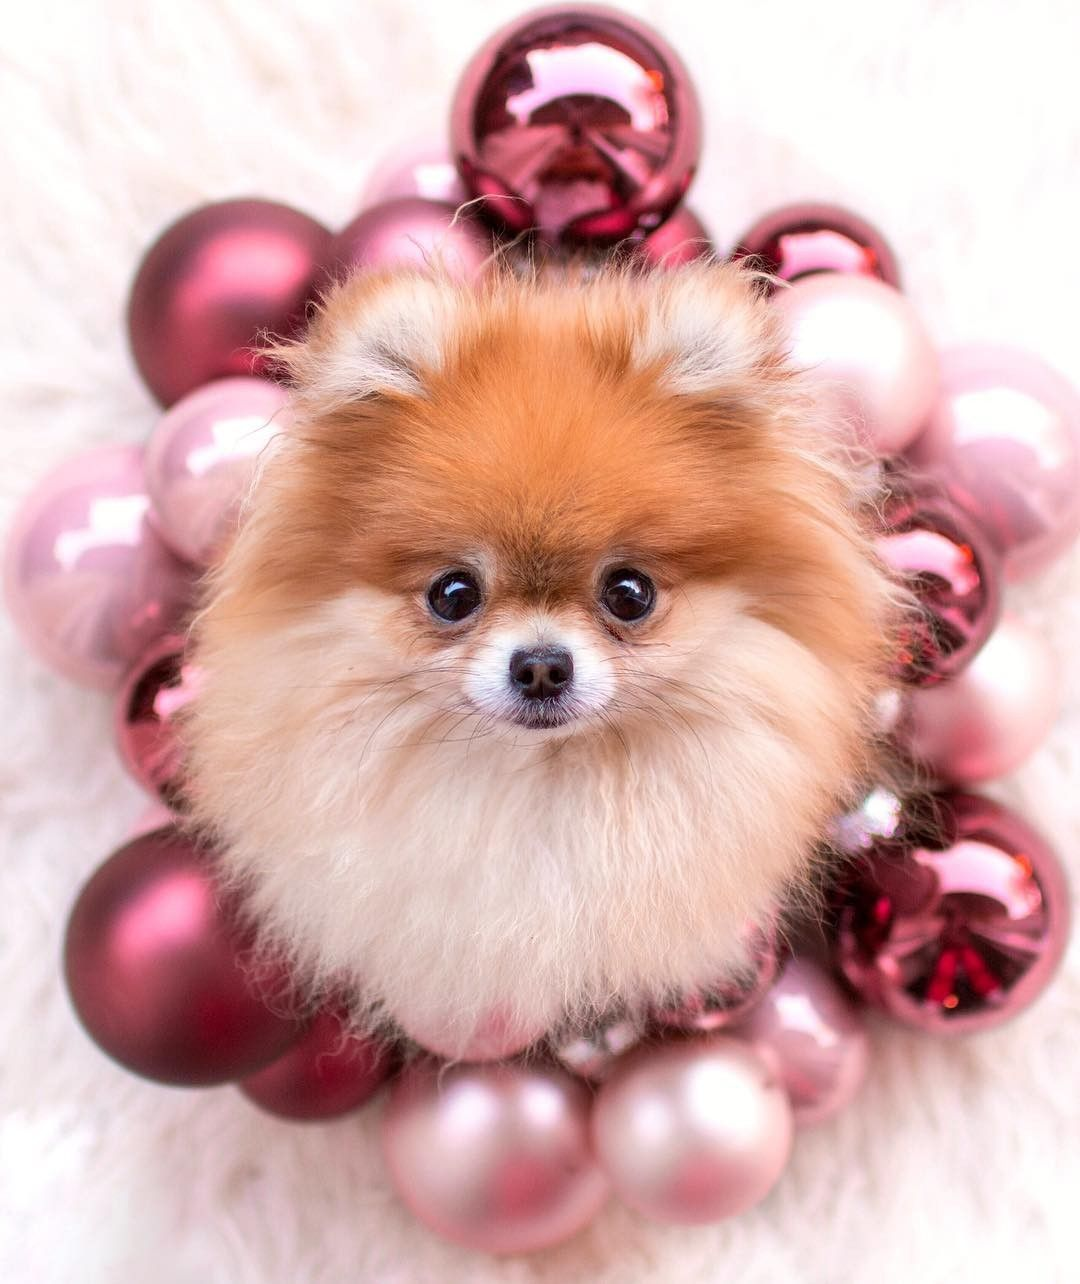 Pin By Cathy Chang On Pomeranian Pomeranian Puppy Dog Wallpaper Iphone Dogs And Kids